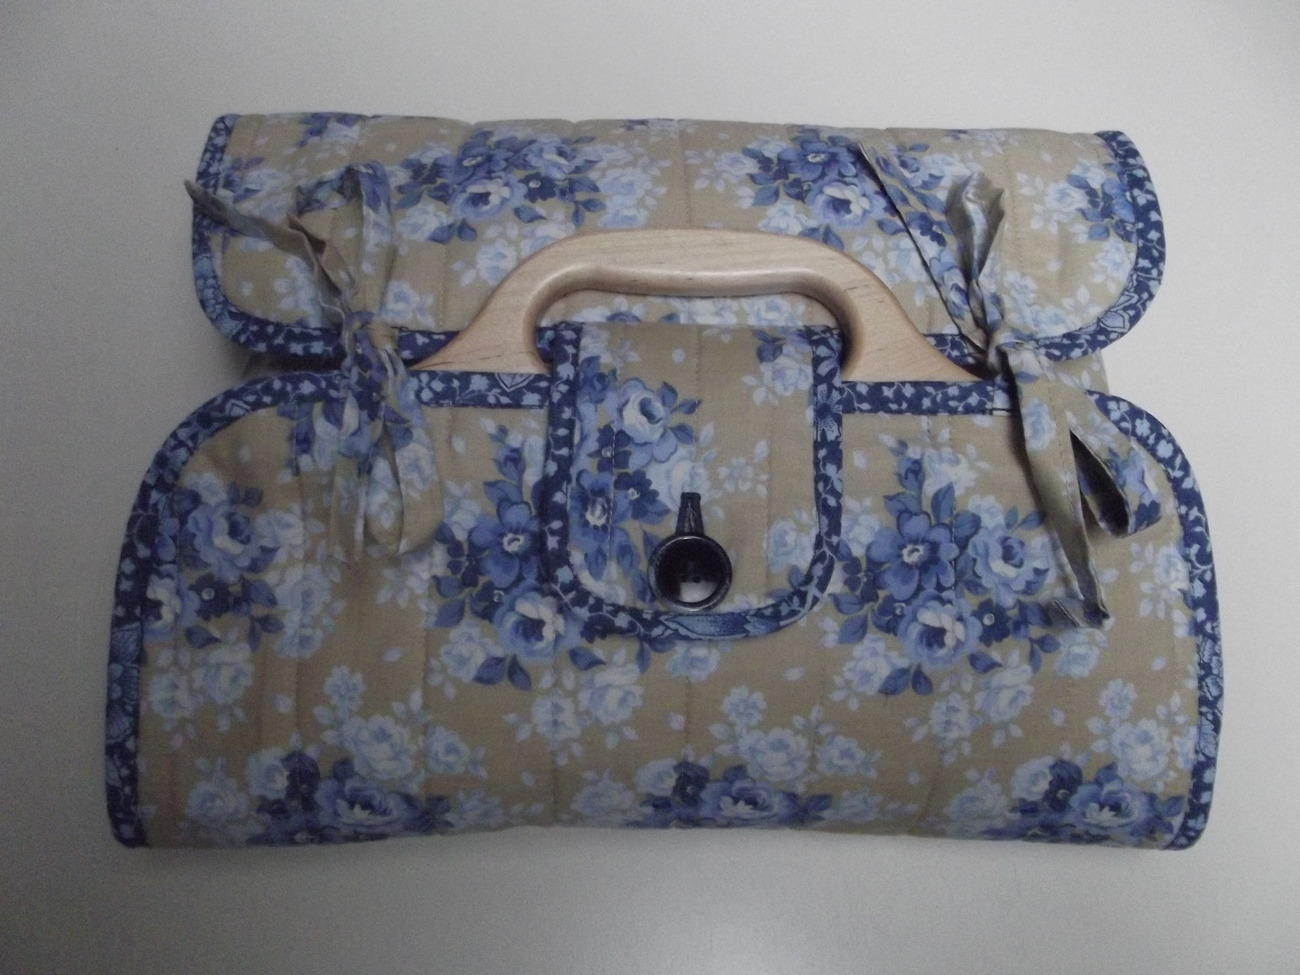 Blue_flower_casserole_carrier_top_view